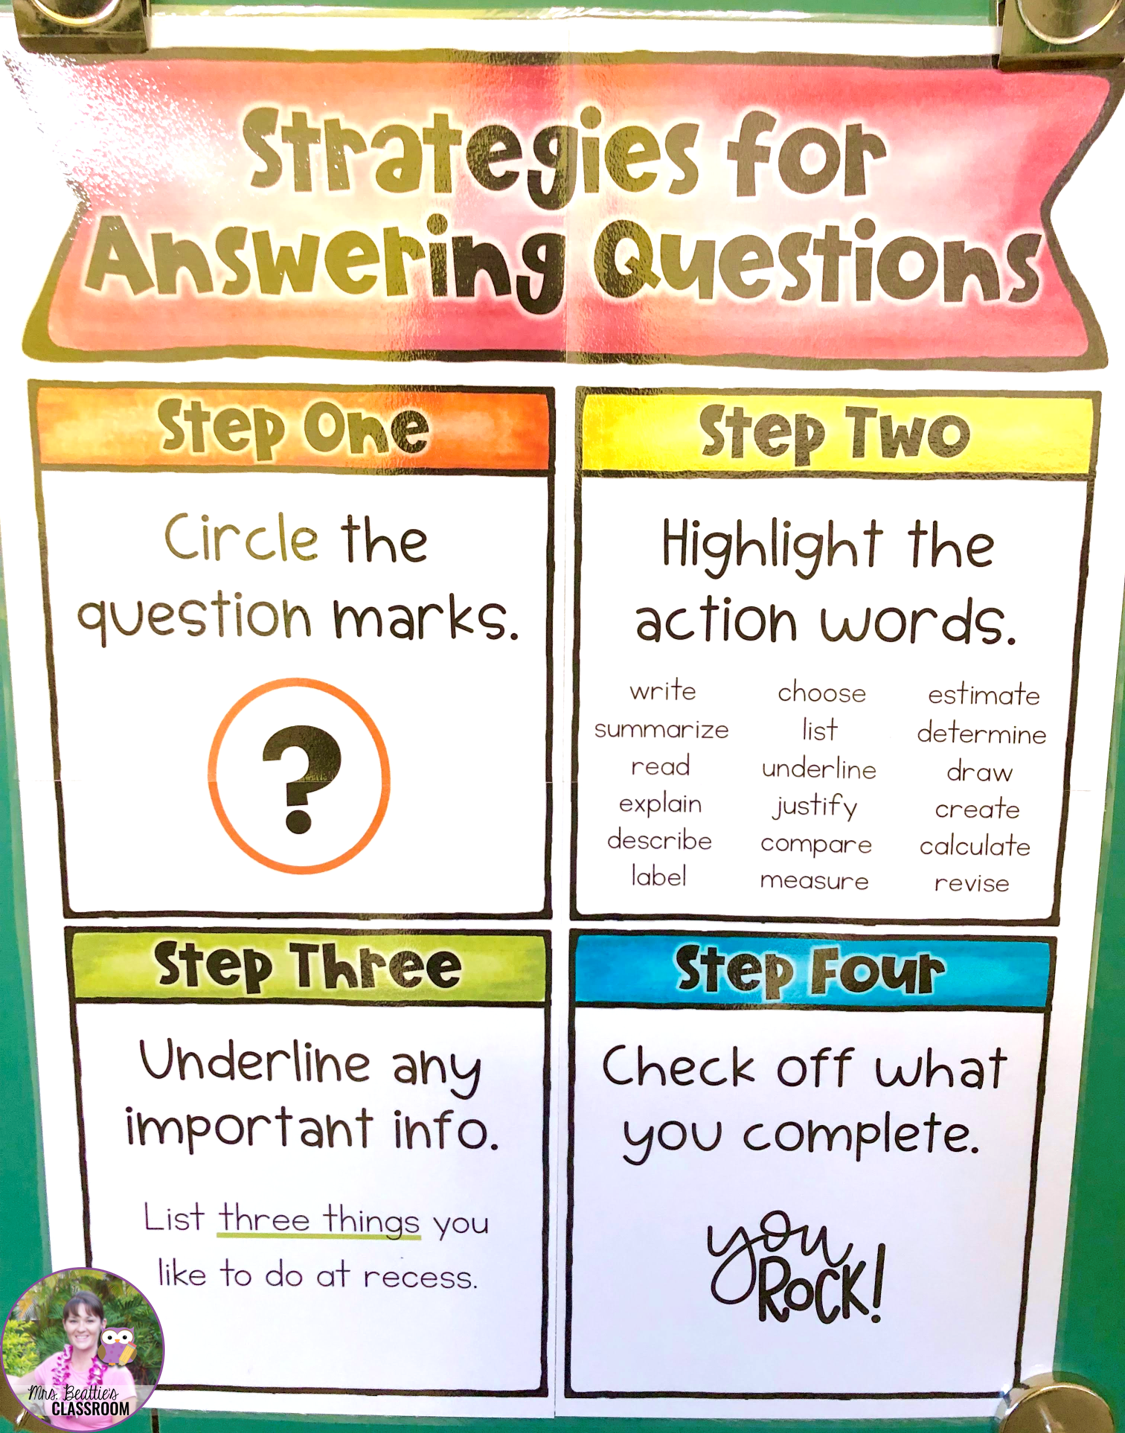 FREE Strategies for Answering Questions Poster